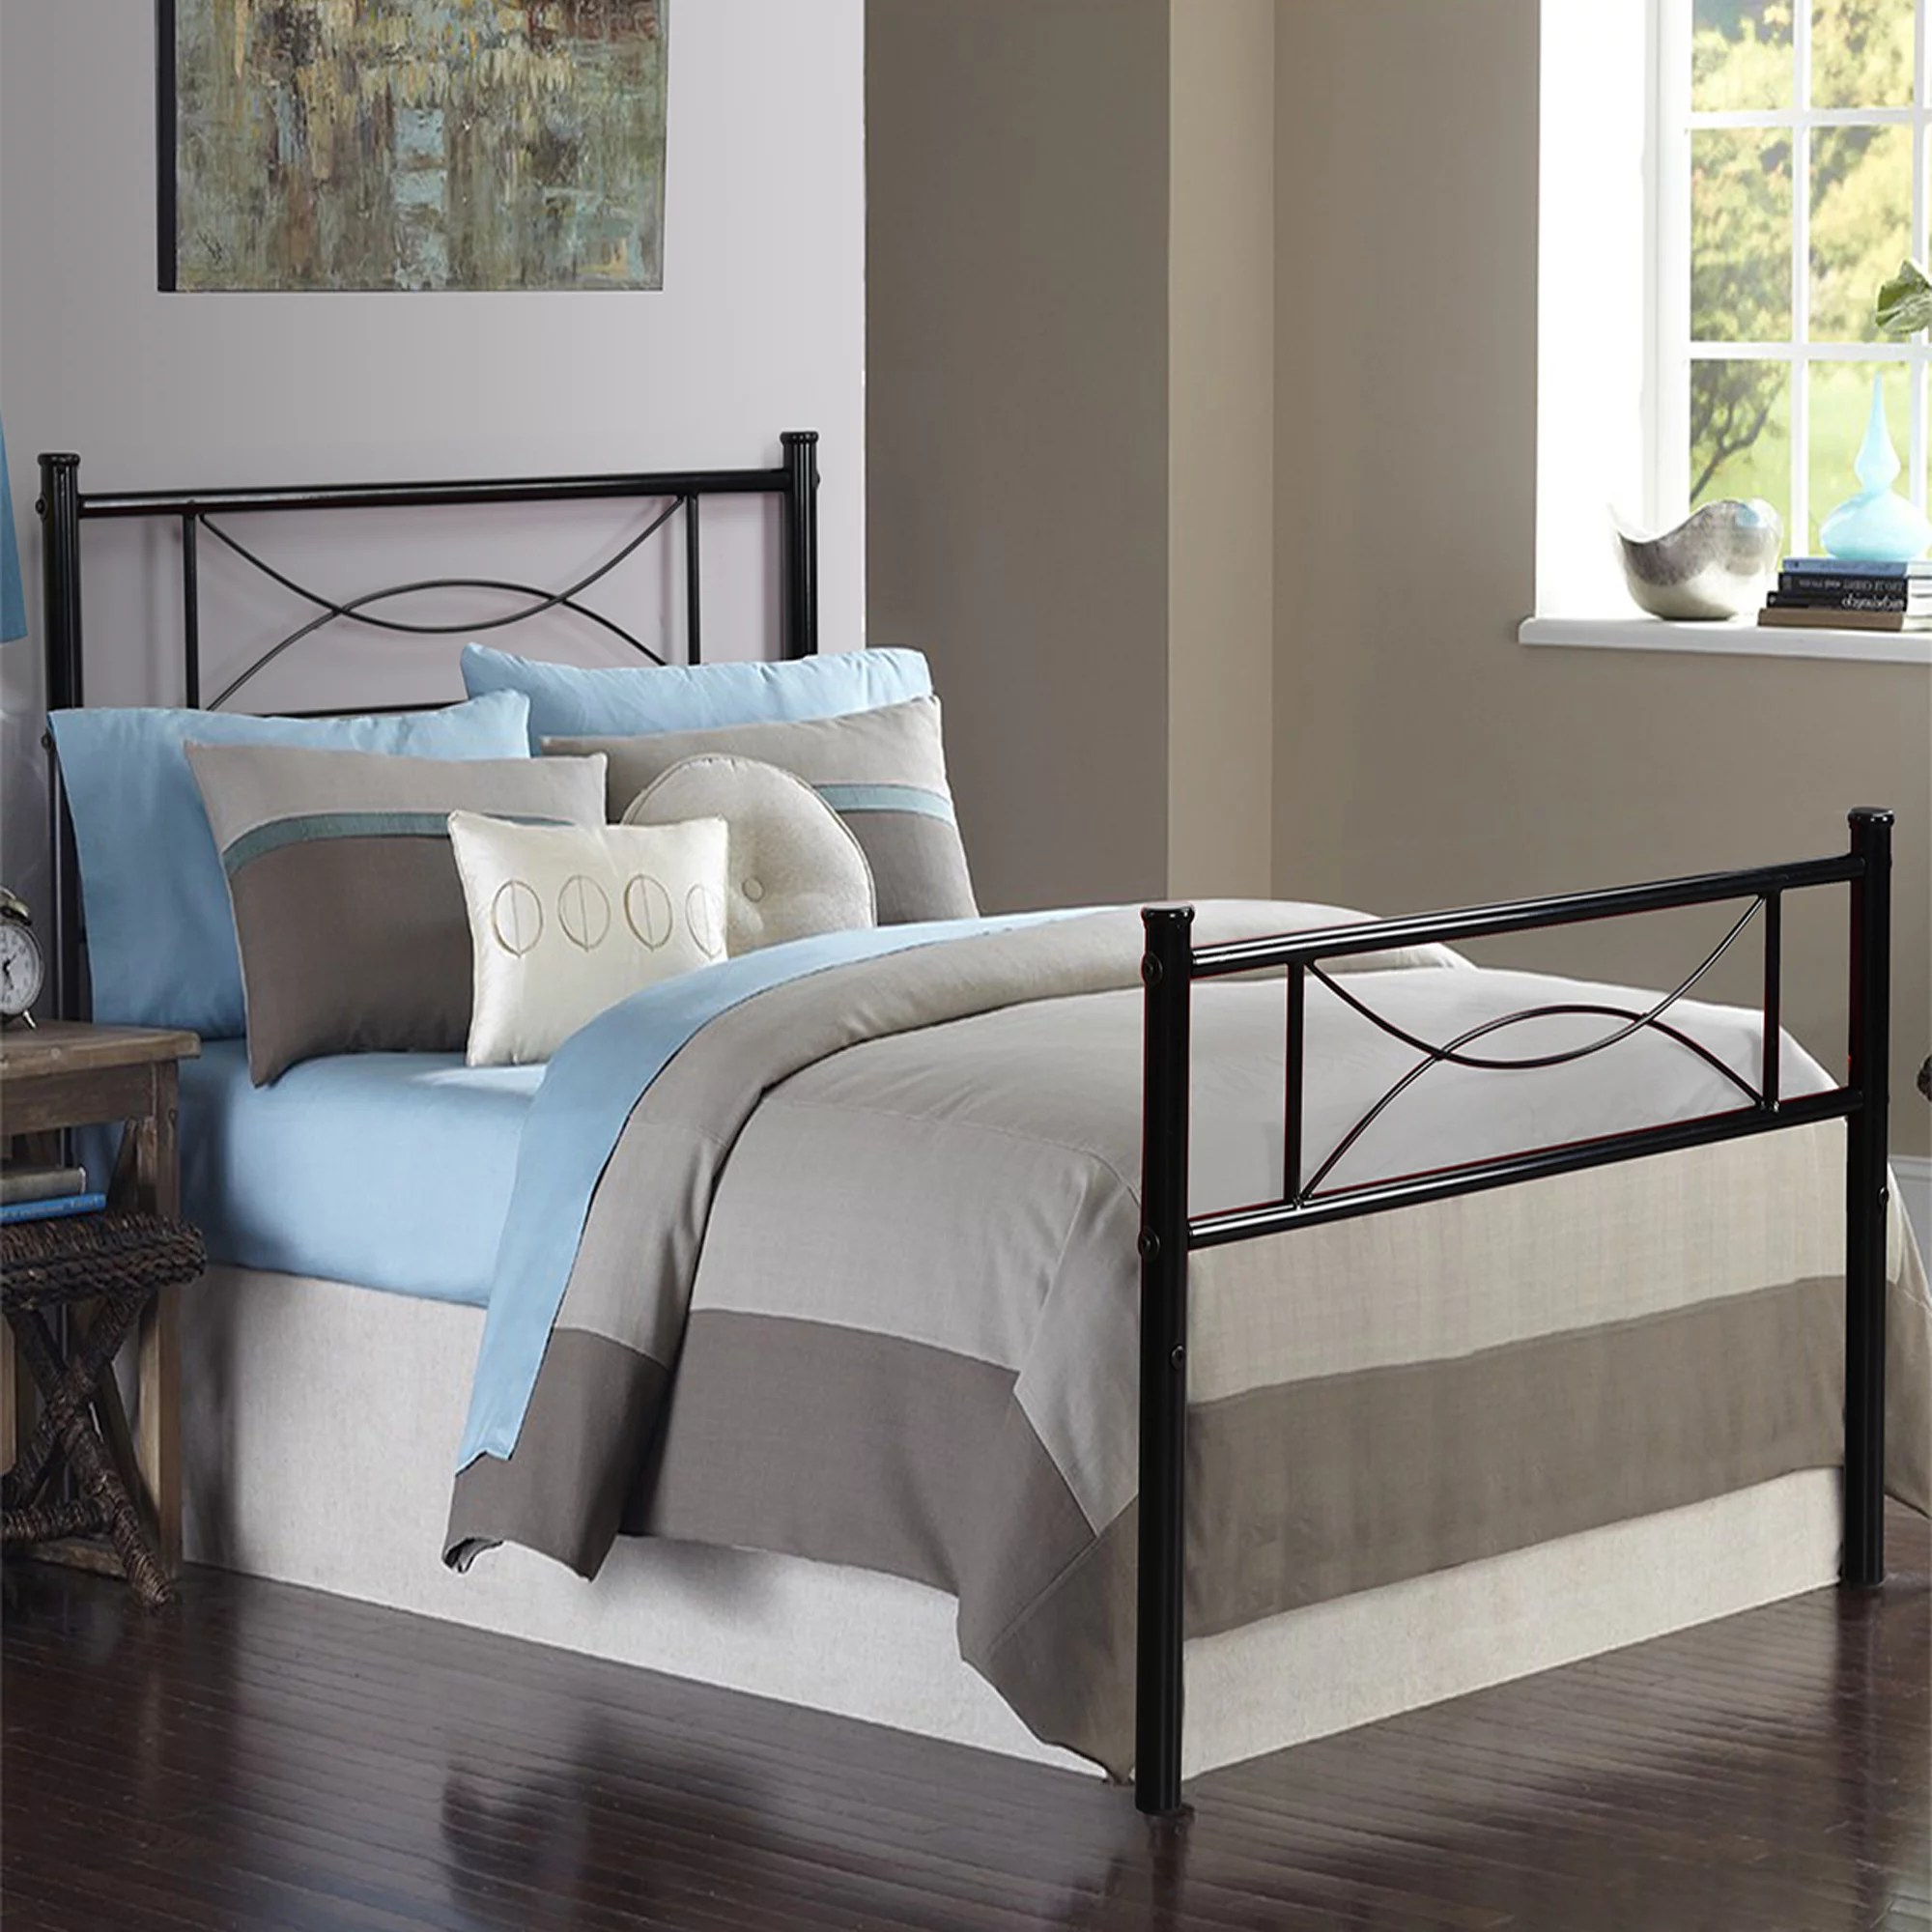 Teraves 12 7 High Metal Platform Bed Frame With Two Bowknot Headboards Easy Assembly Twin Full Size Walmart Com Walmart Com